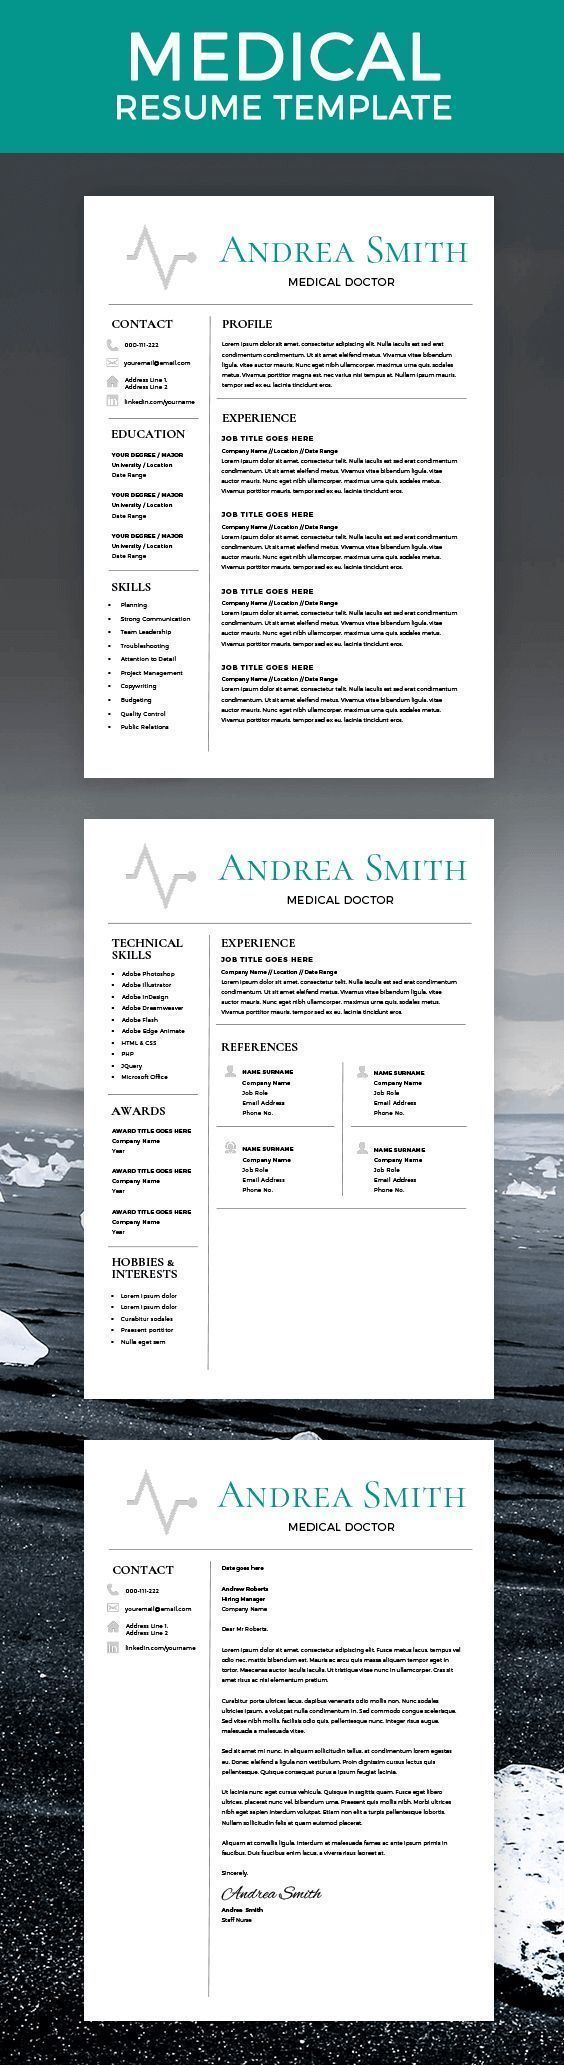 Nursing Resume, CNA Resume, Medical Assistant Resume, Nursing Student Resume,  LPN Resume, RN Resume, Resume For Registered Nurse. Resume Template FreeModern  ...